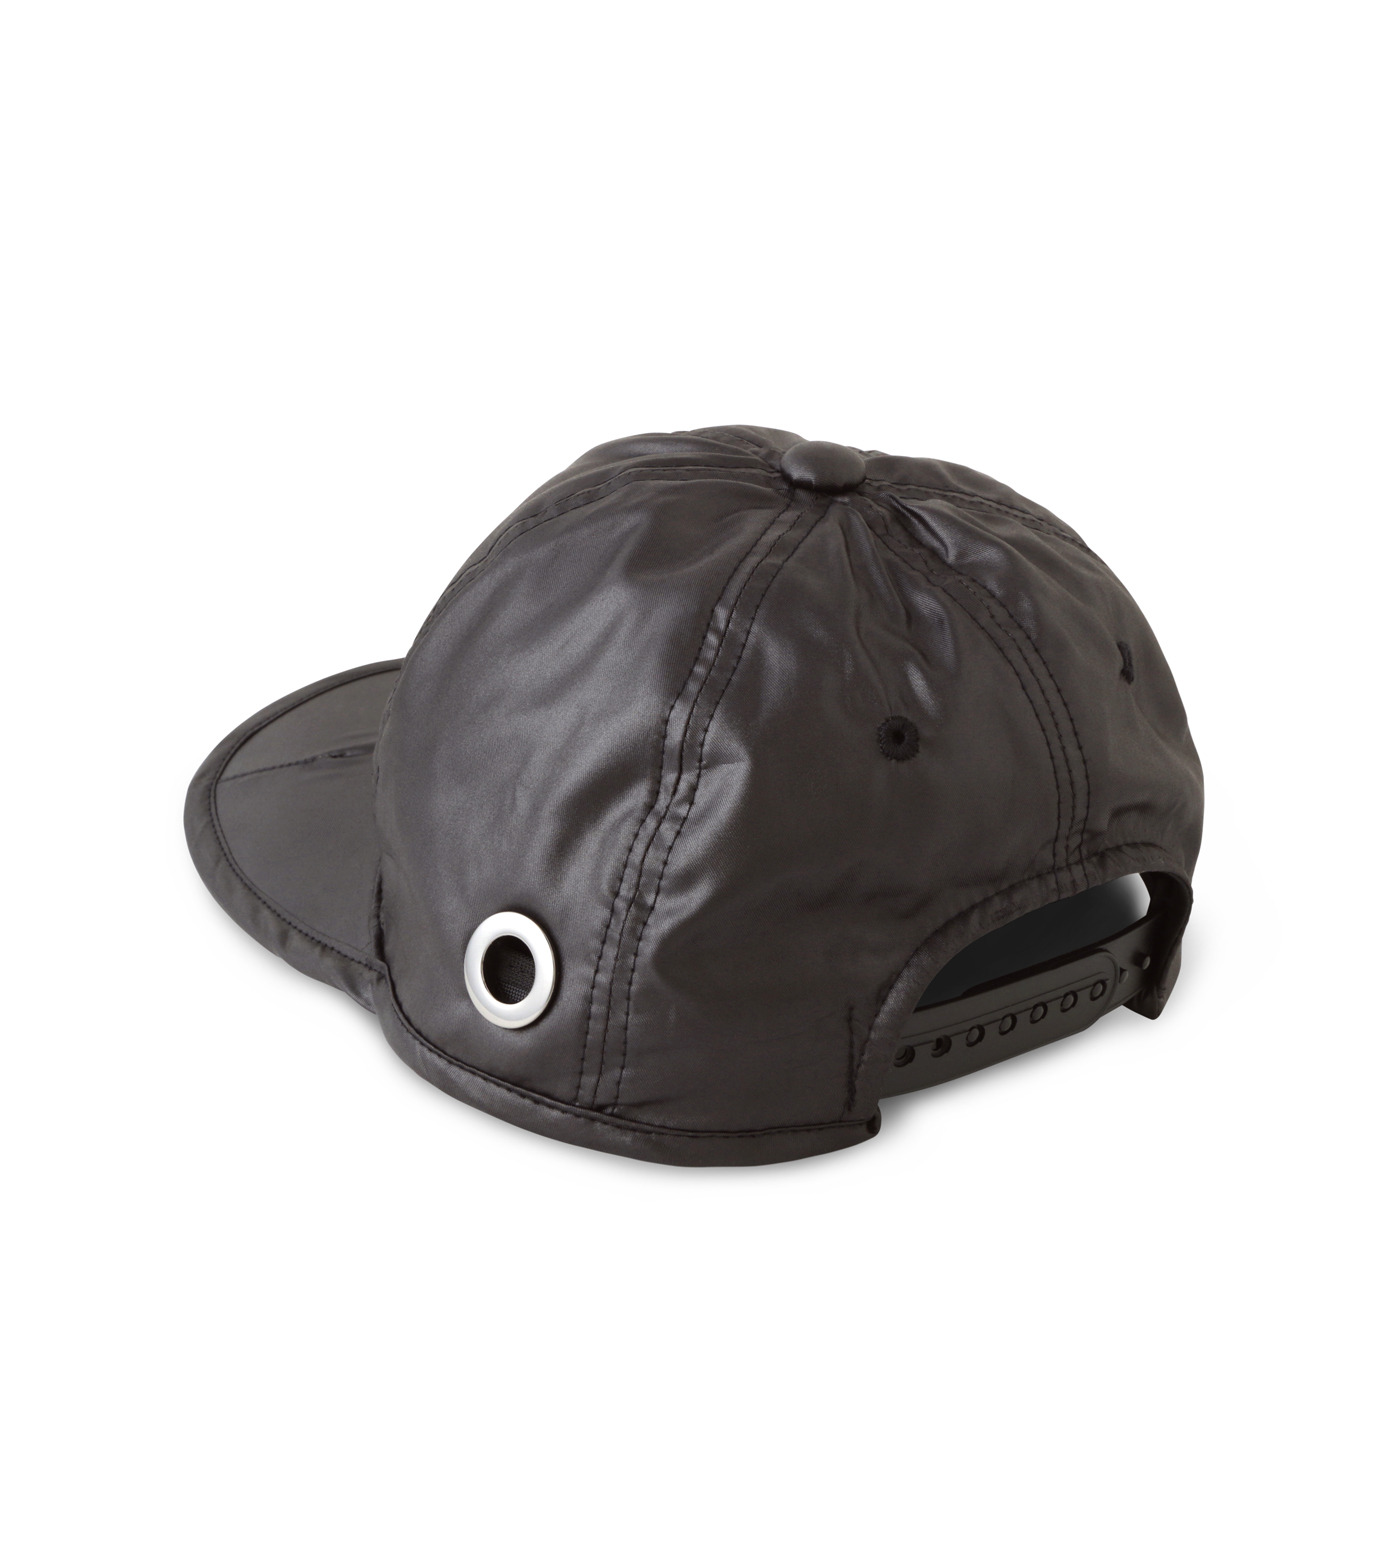 HEY YOU !(ヘイユウ)のWASHED TWILL CAP-BLACK(HATS/HATS)-18S90023-13 拡大詳細画像3